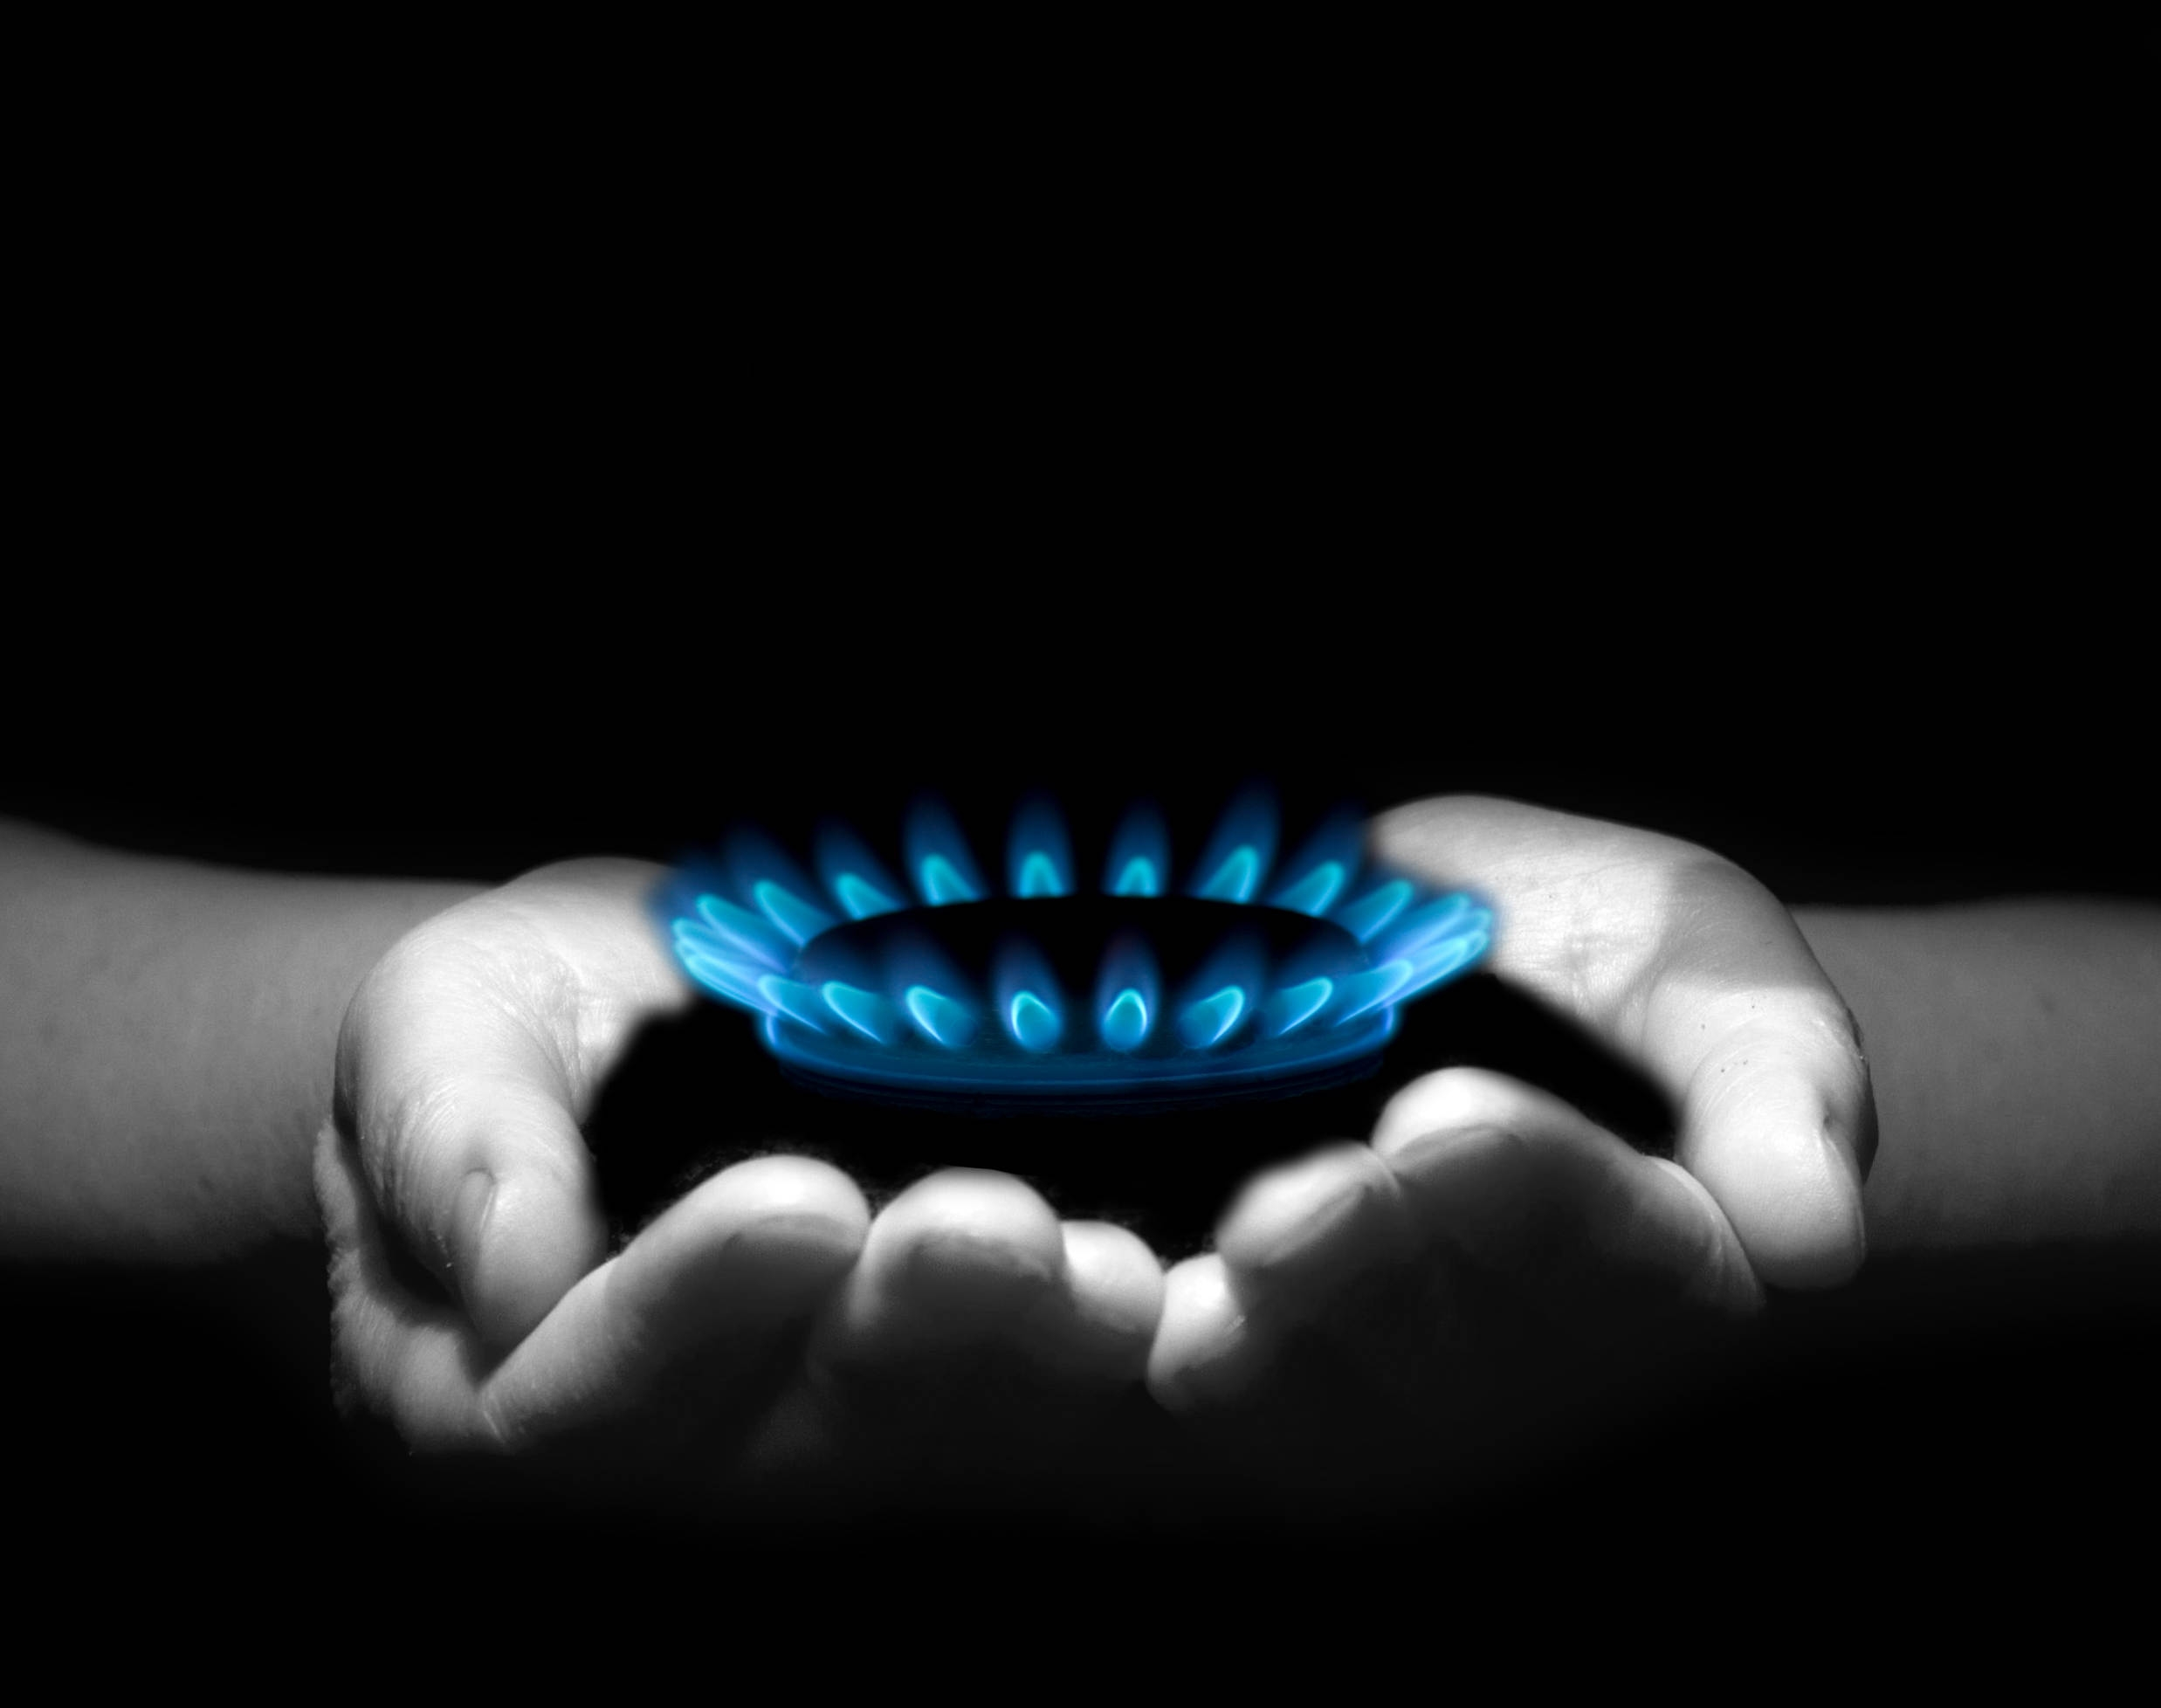 75753 download wallpaper Miscellanea, Miscellaneous, Flame, Hotplate, Burner, Gas, Hands, Black Background screensavers and pictures for free